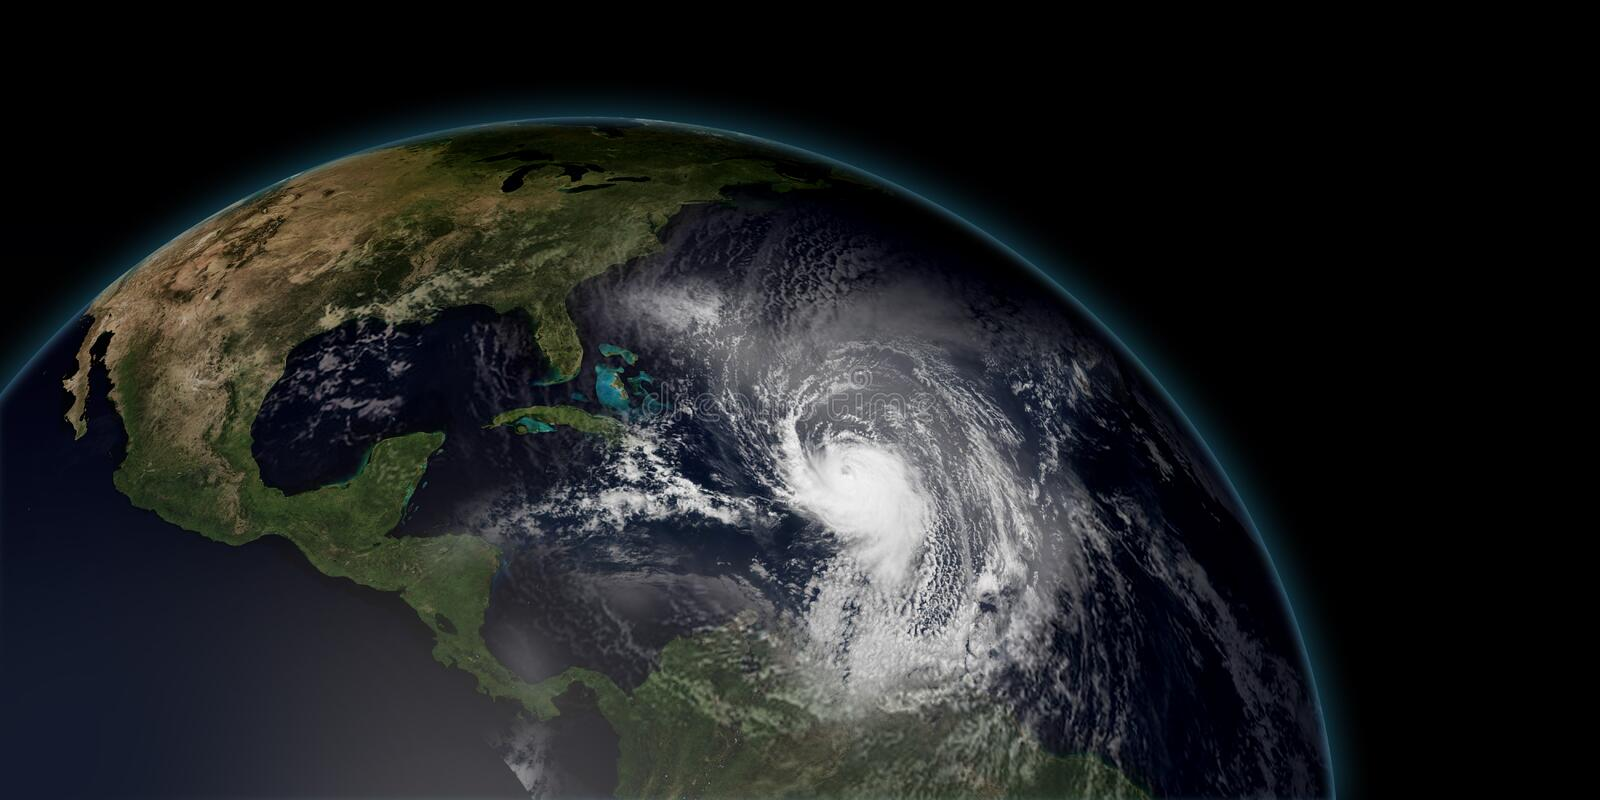 Extremely detailed and realistic high resolution 3D illustration of a hurricane vector illustration